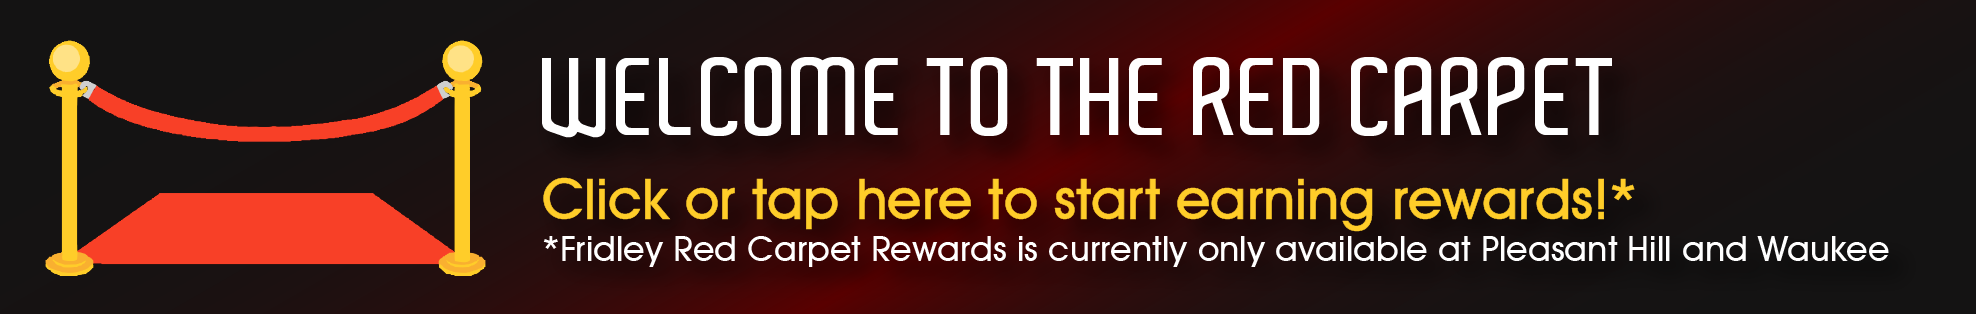 Click here to learn more about our Red Carpet Rewards!